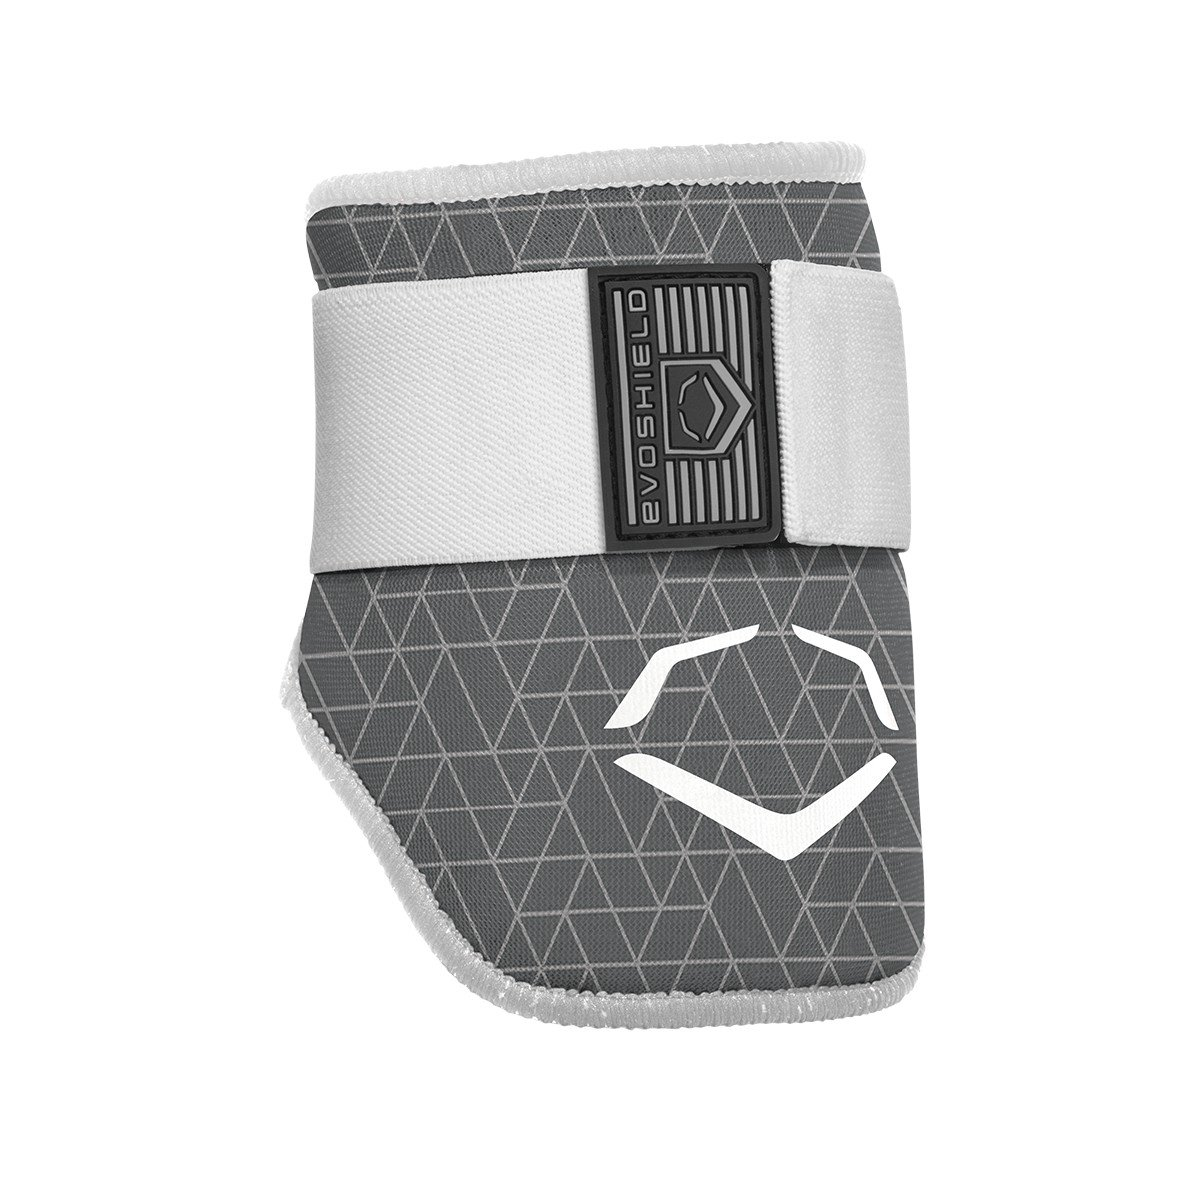 EvoShield EvoCharge Batter's Elbow Guard - Adult, Grey